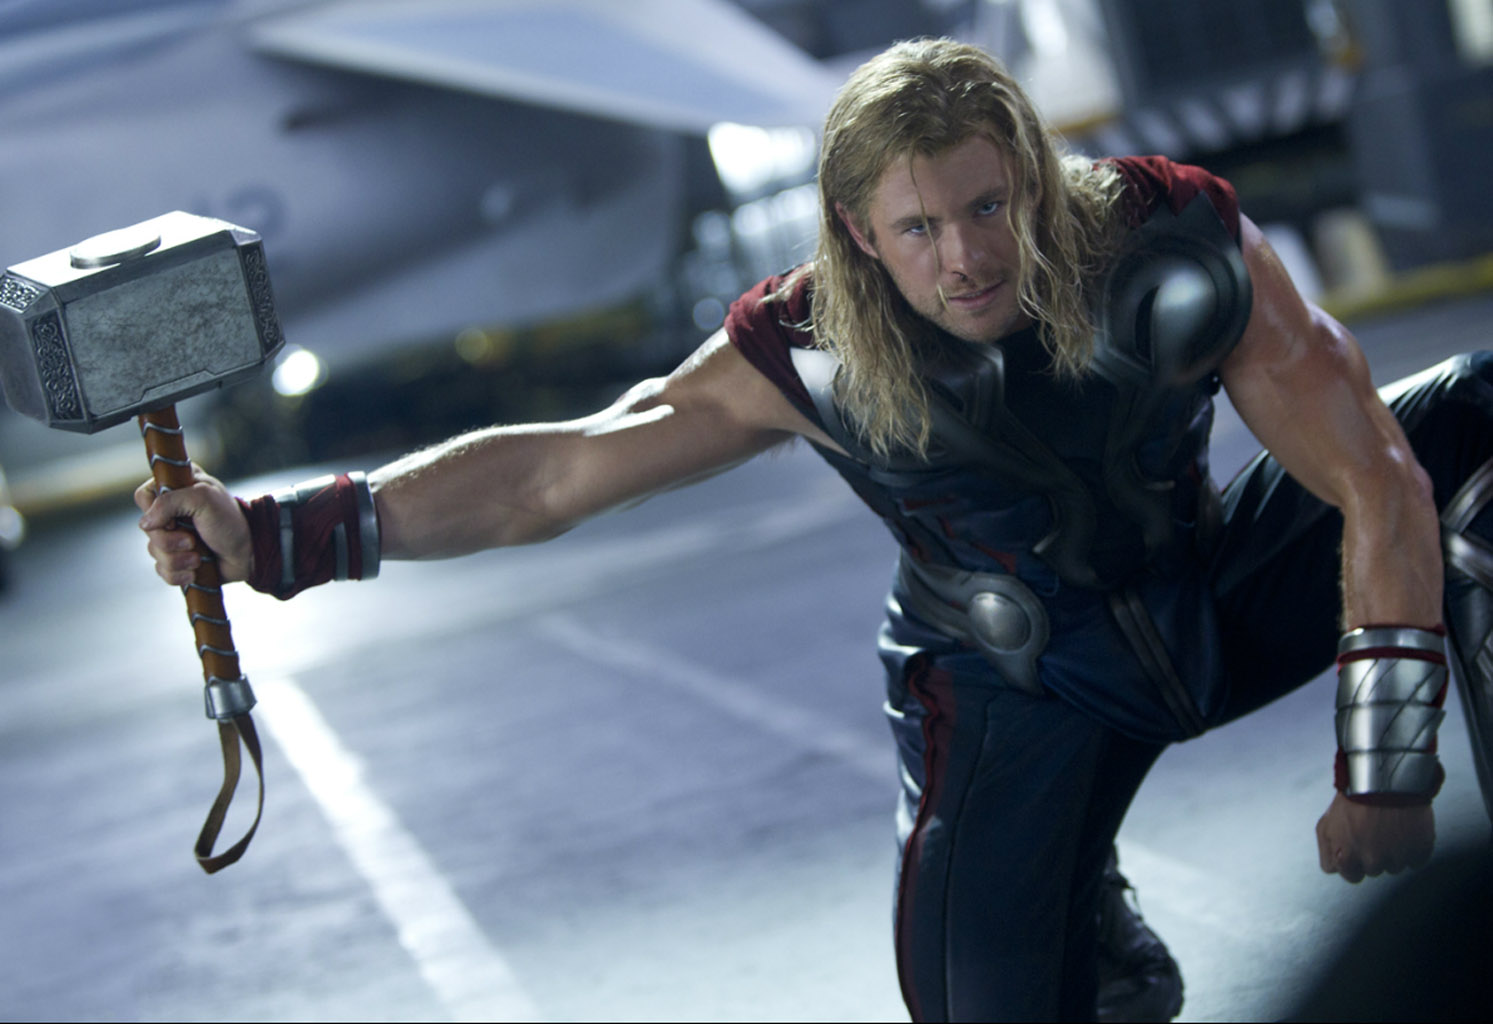 http://1.bp.blogspot.com/-NWT0-ujVuAk/T62F2IOwrwI/AAAAAAAADZQ/IhErHHvGlWI/s1600/Marvel-The-Avengers-Movie-2012-HD-Wallpaper-Thor-The-God-of-Thunder-21.jpg